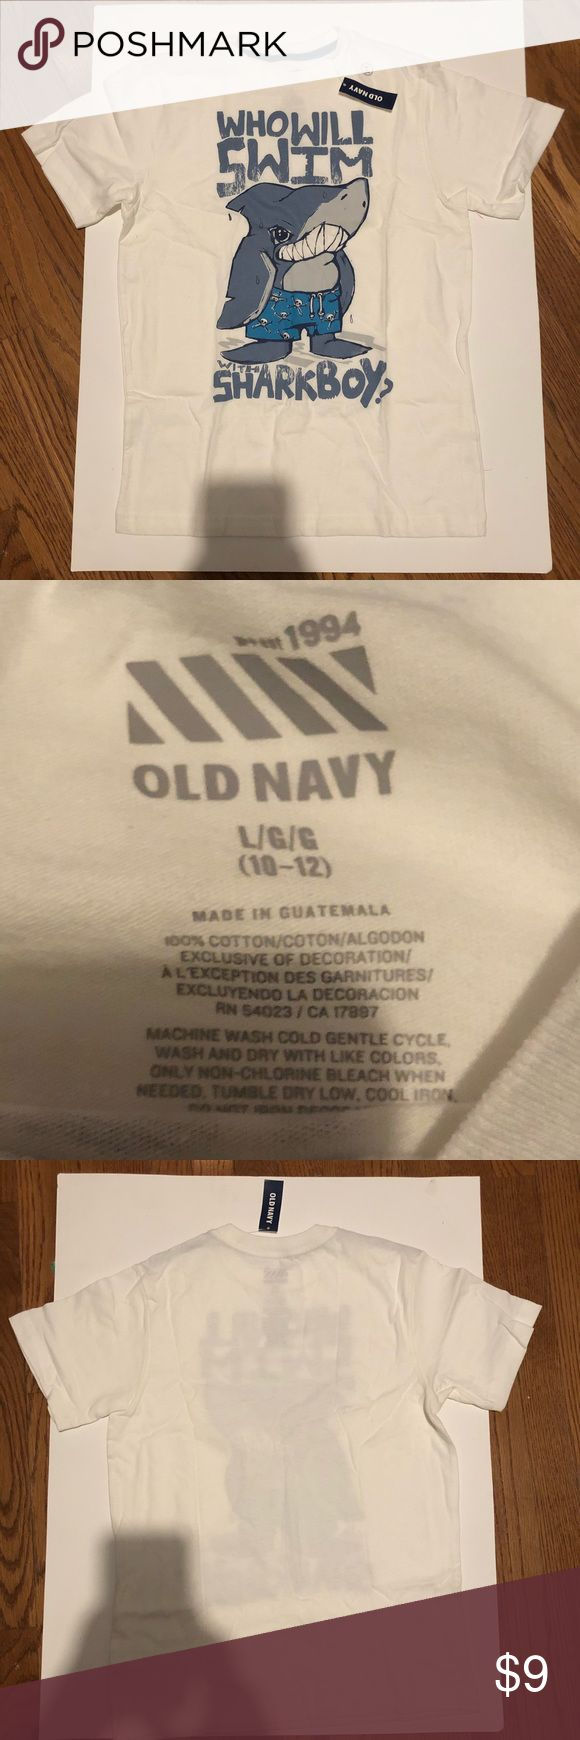 Old navy Boy t-shirt Old Navy boy T-shirt brand new. Size L (10-12) Old Navy Shirts & Tops Tees - Short Sleeve